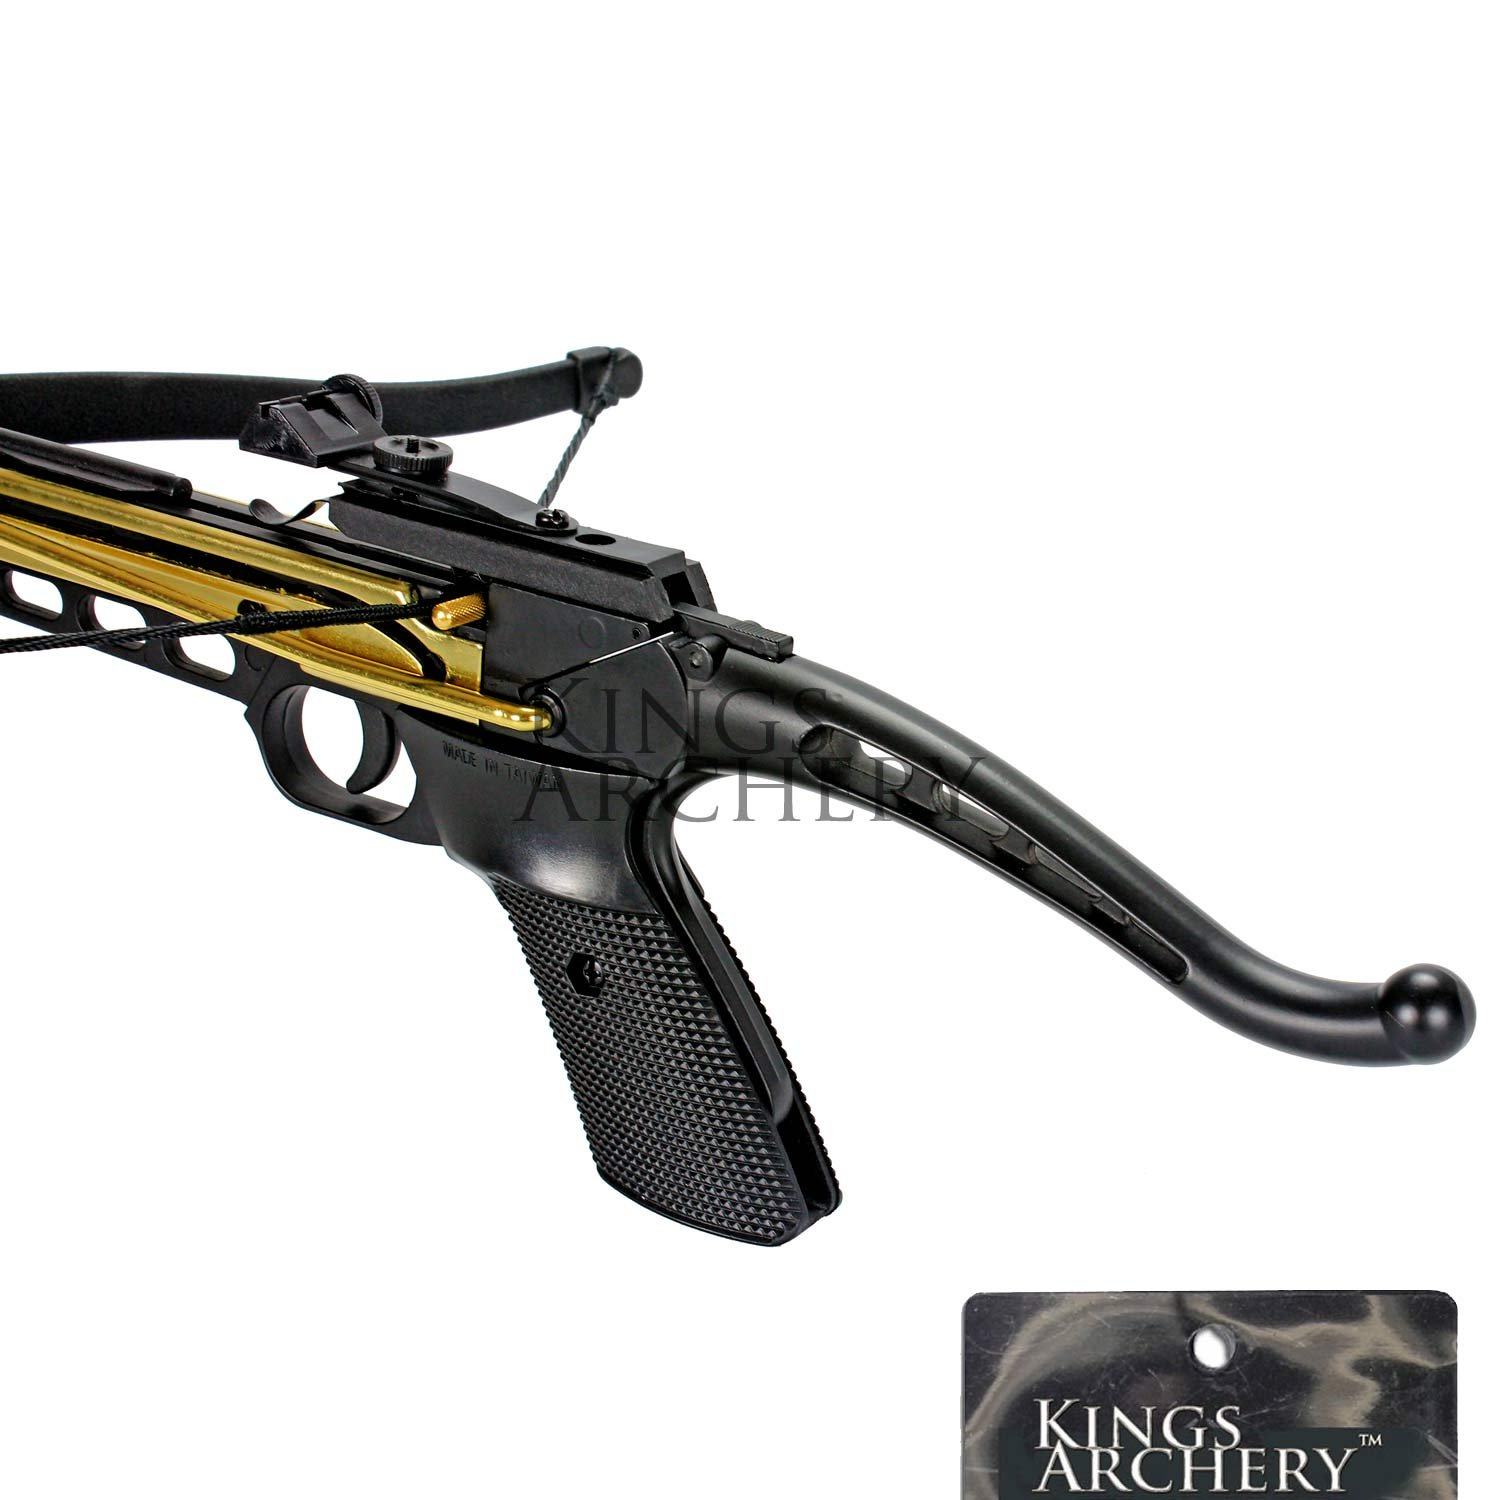 Crossbow Self-Cocking 80 LBS by KingsArchery® with Hunting Scope, 3 Aluminium Arrow Bolts, and Bonus 120-pack of Colored PVC Arrow Bolts + KingsArchery® Warranty by KingsArchery (Image #5)